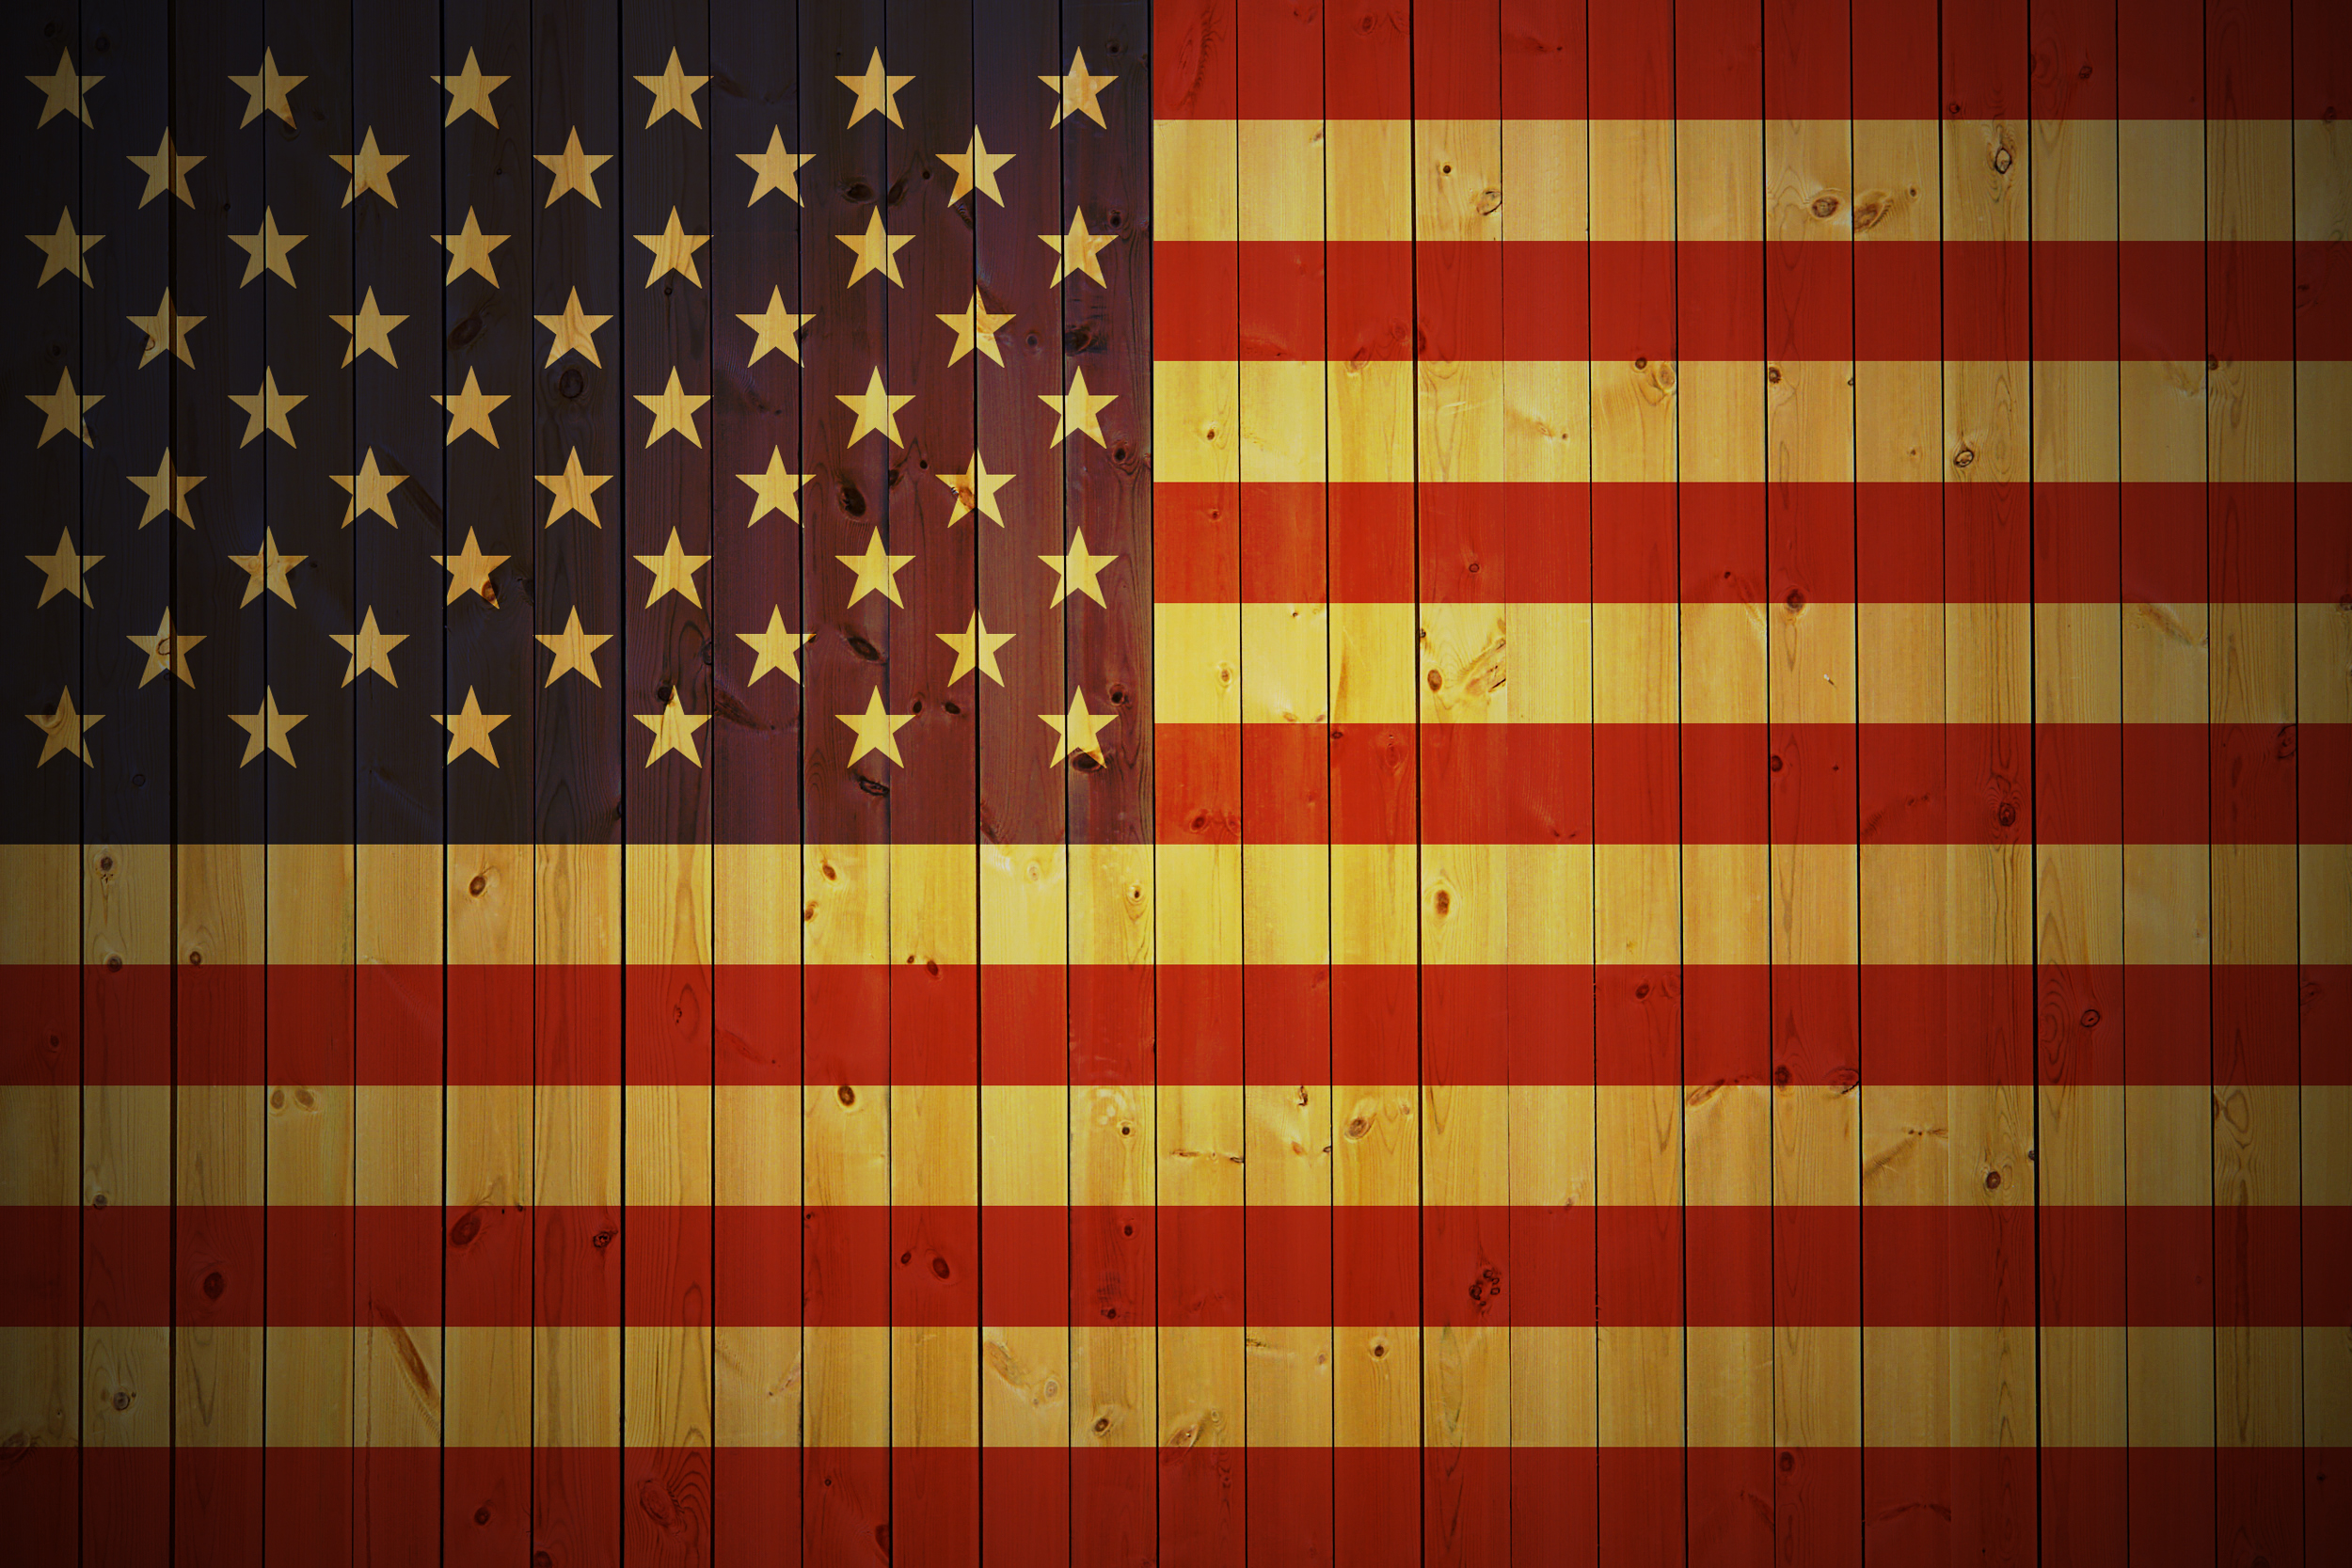 Hd wallpaper usa flag - Hd Wallpaper Background Id 75524 2500x1667 Man Made American Flag